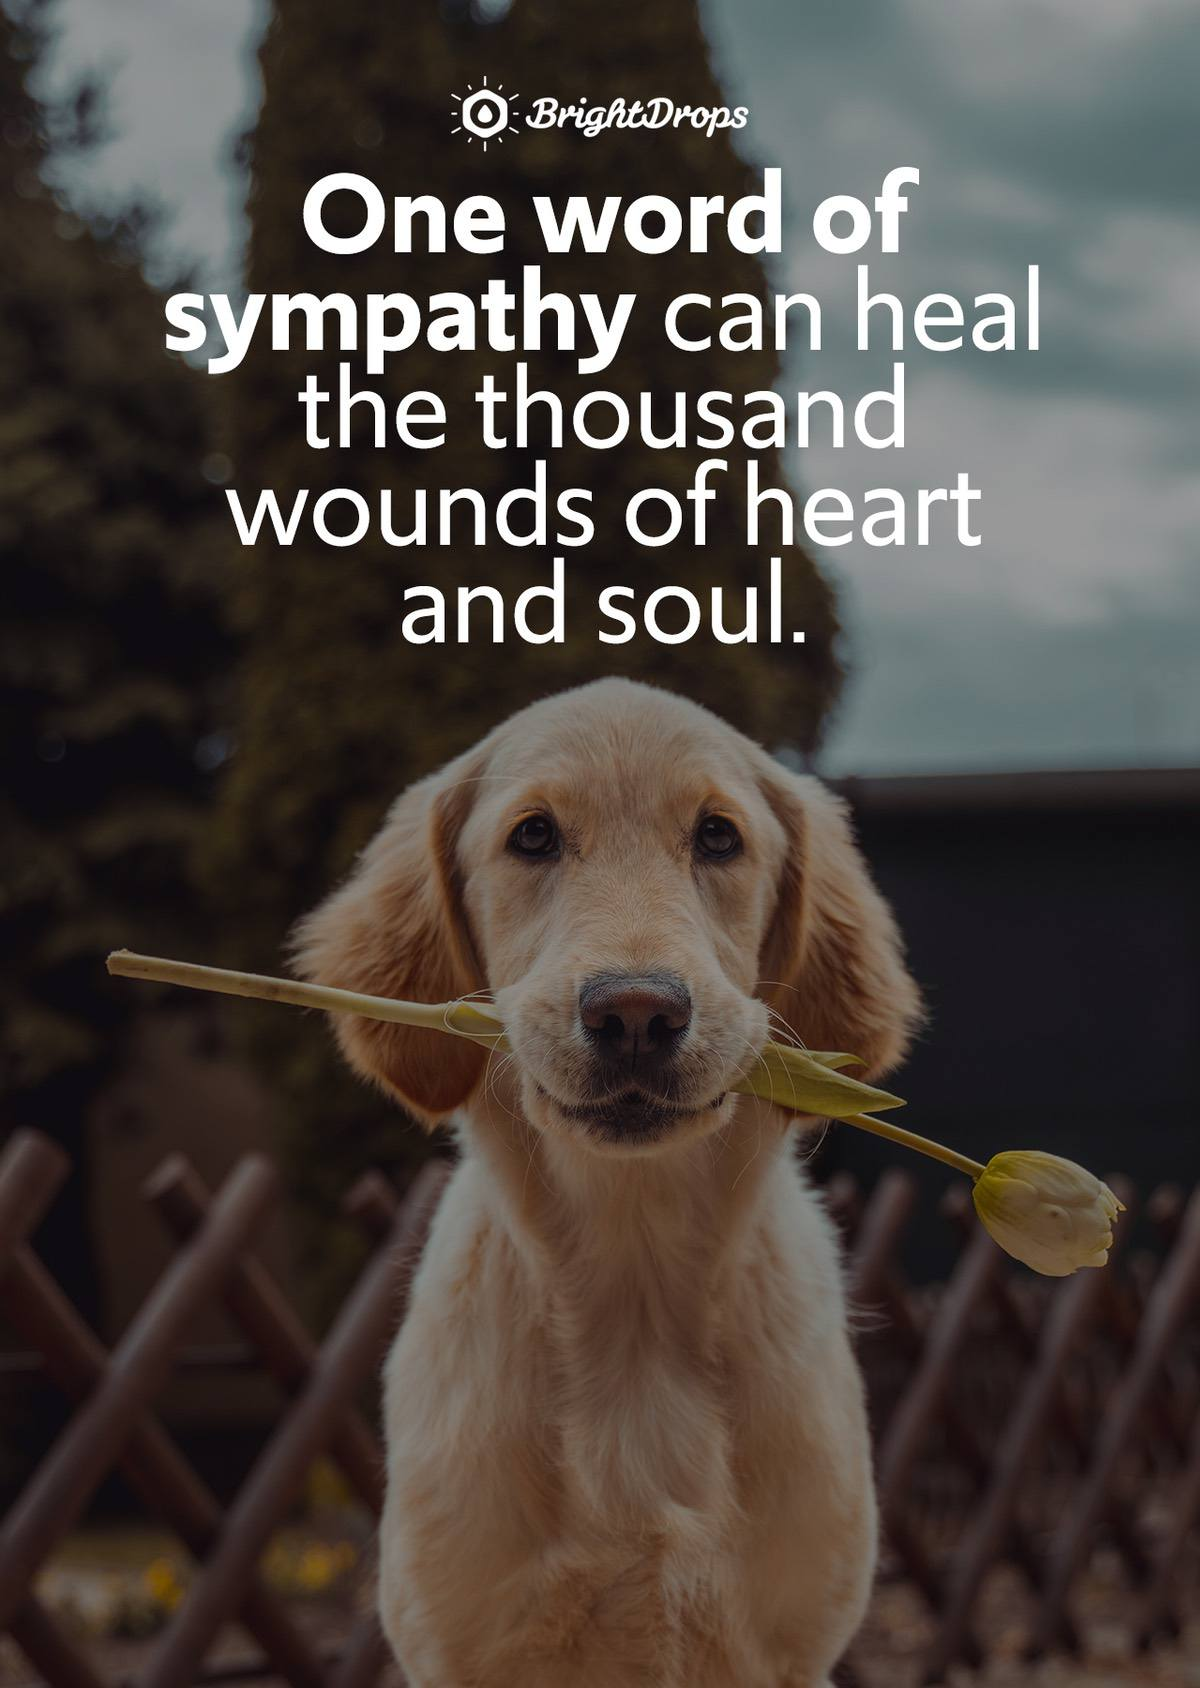 """One word of sympathy can heal the thousand wounds of heart and soul."" - Anonymous"